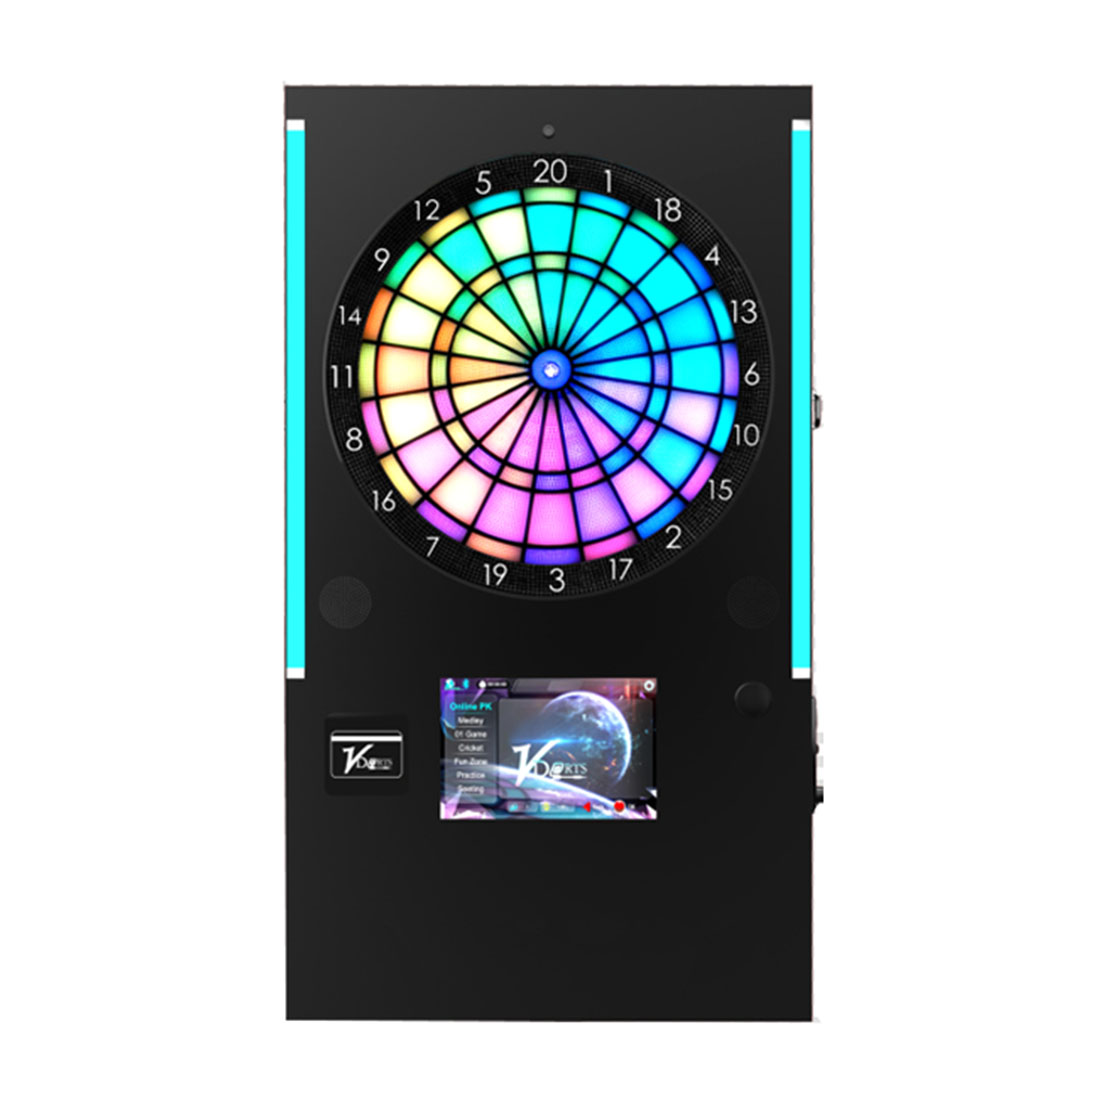 Scorer Touchpad Smart Luminous Target Automatic Scoring Dart Machine For Hanging Competition Electronic Target Entertainment